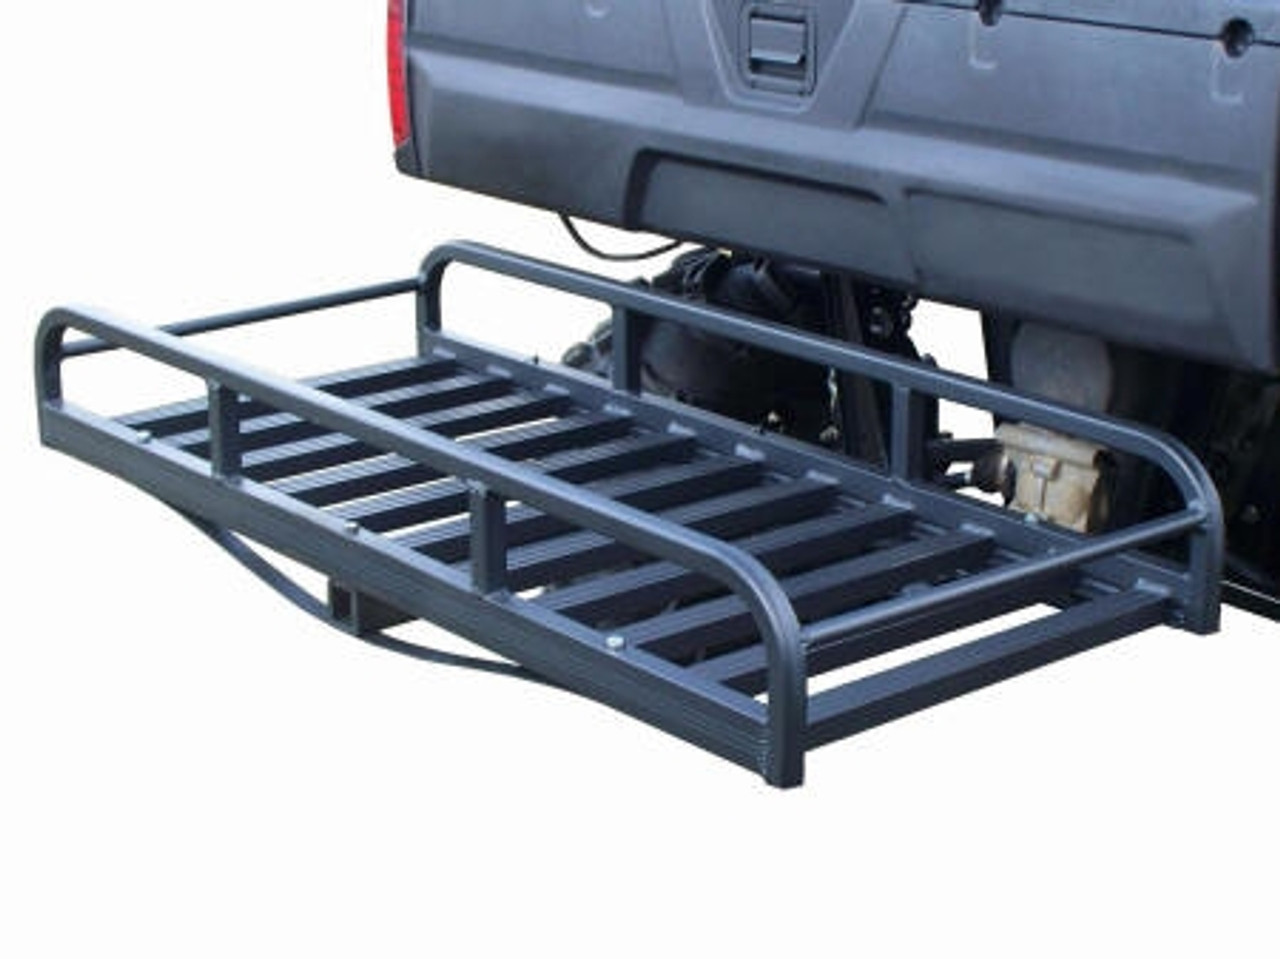 https leonardaccessories com product specialty racks great day hitch n ride atv hitch hauler rack